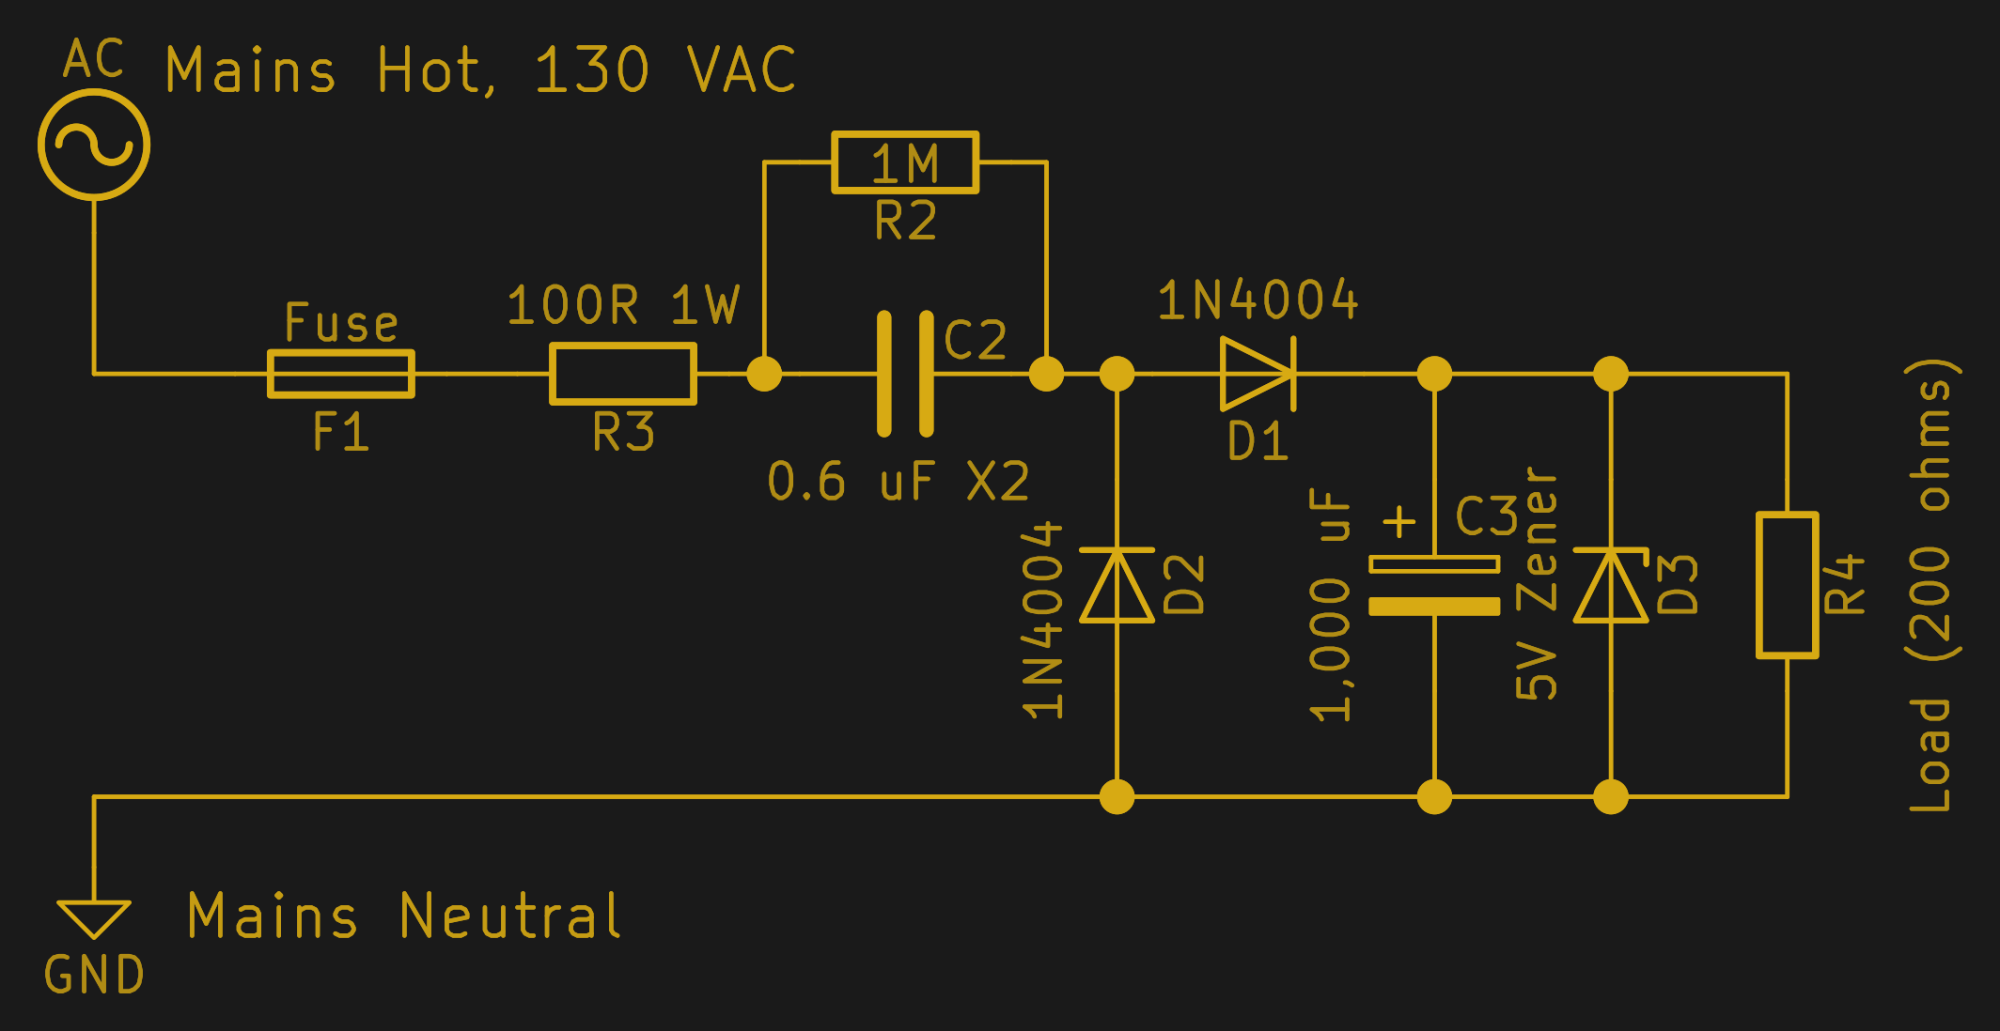 hight resolution of it is subjected to continuous high alternating voltages and if it fails short the 5 v output is at mains voltage